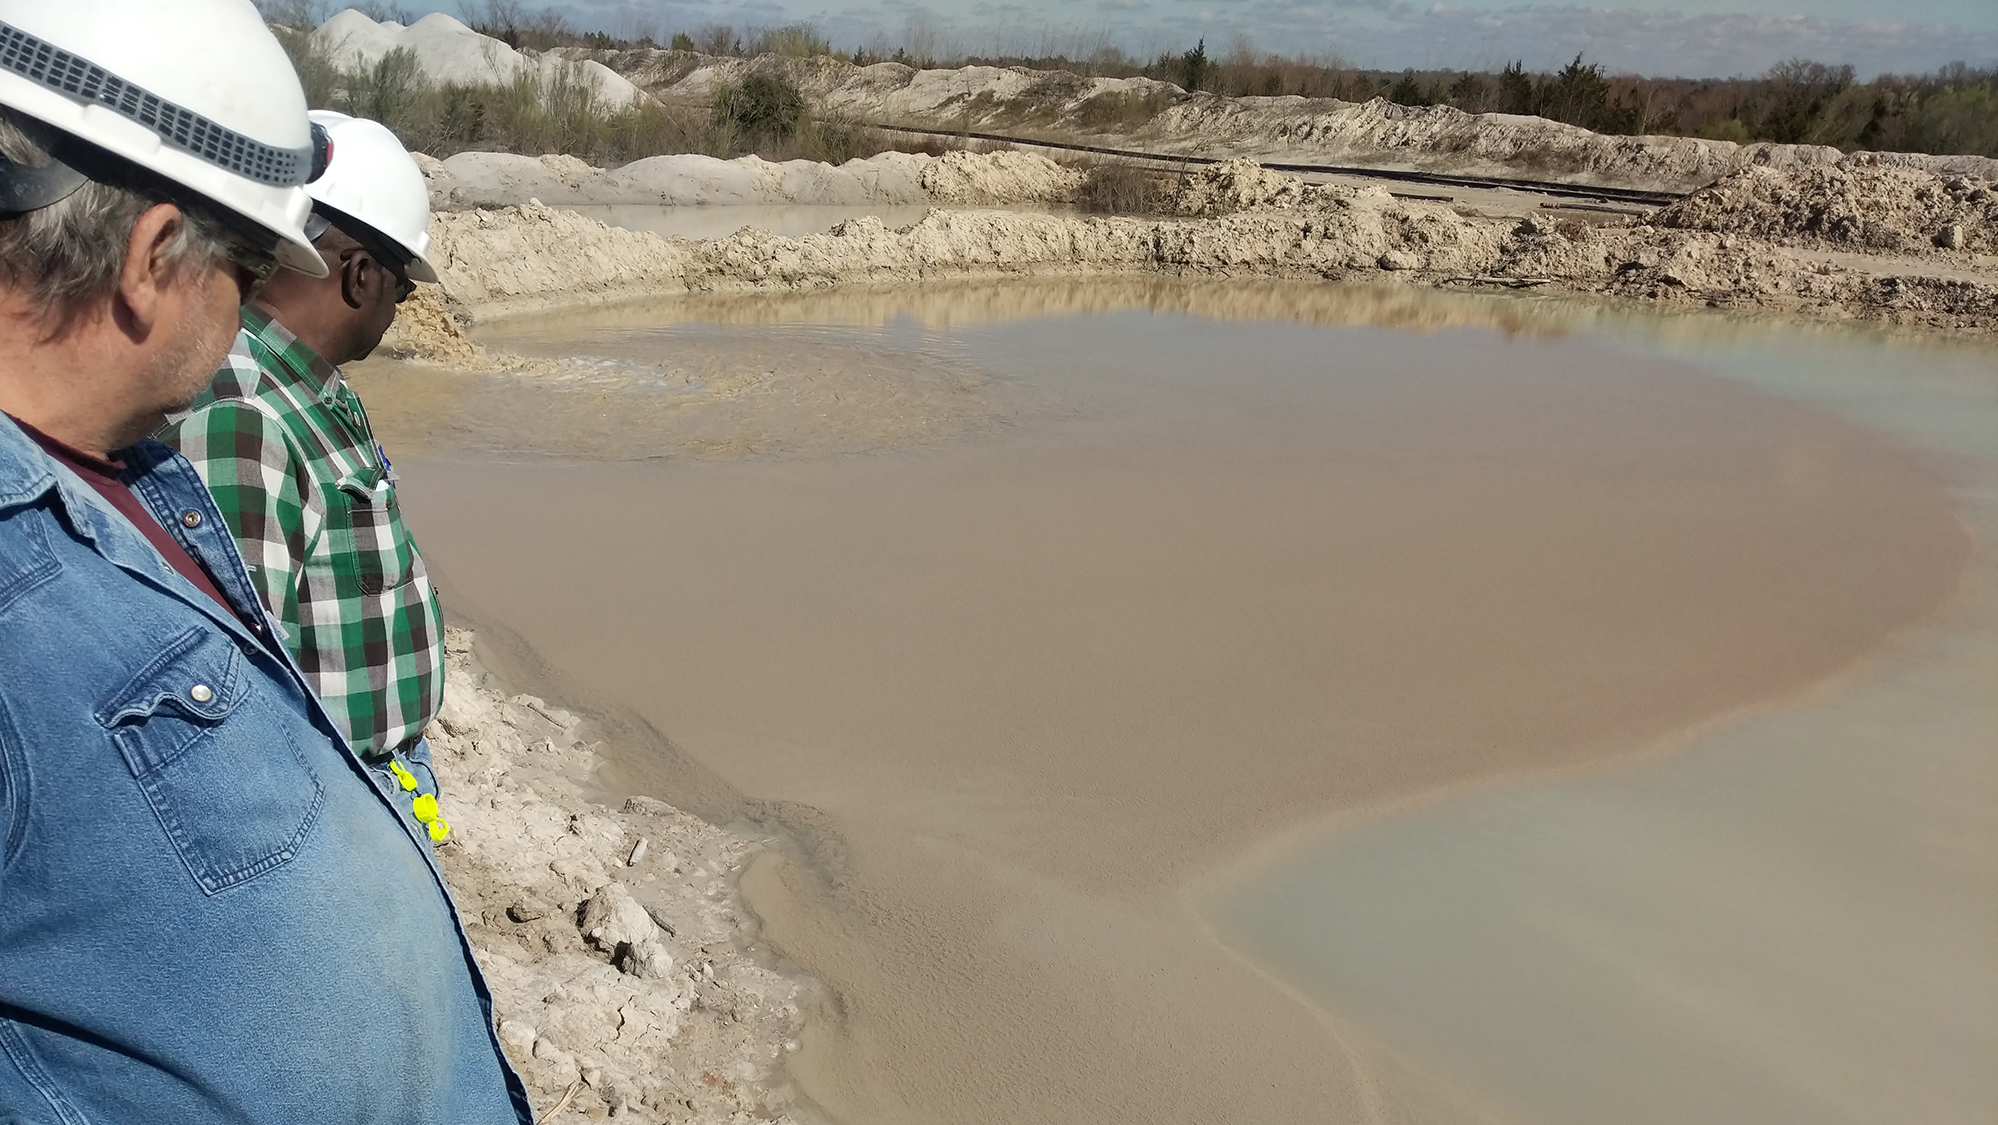 Two men in hard hats looking at dirty water discharging into a settling basin.